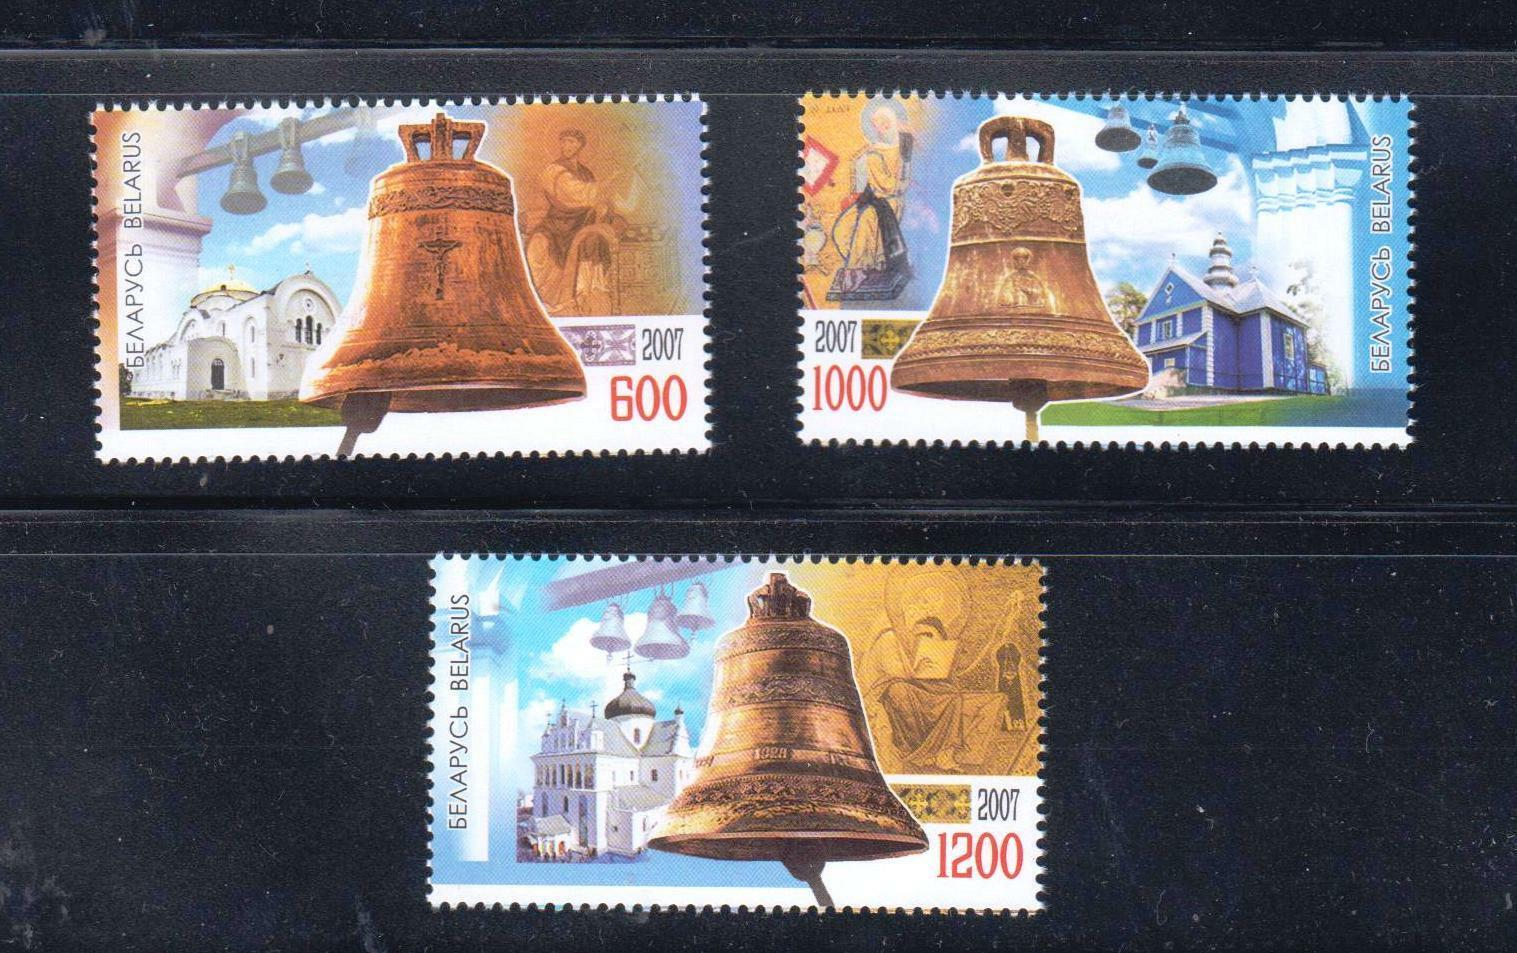 Belarus - Church Bells of Belarus set 3 stamps issued in 2007.